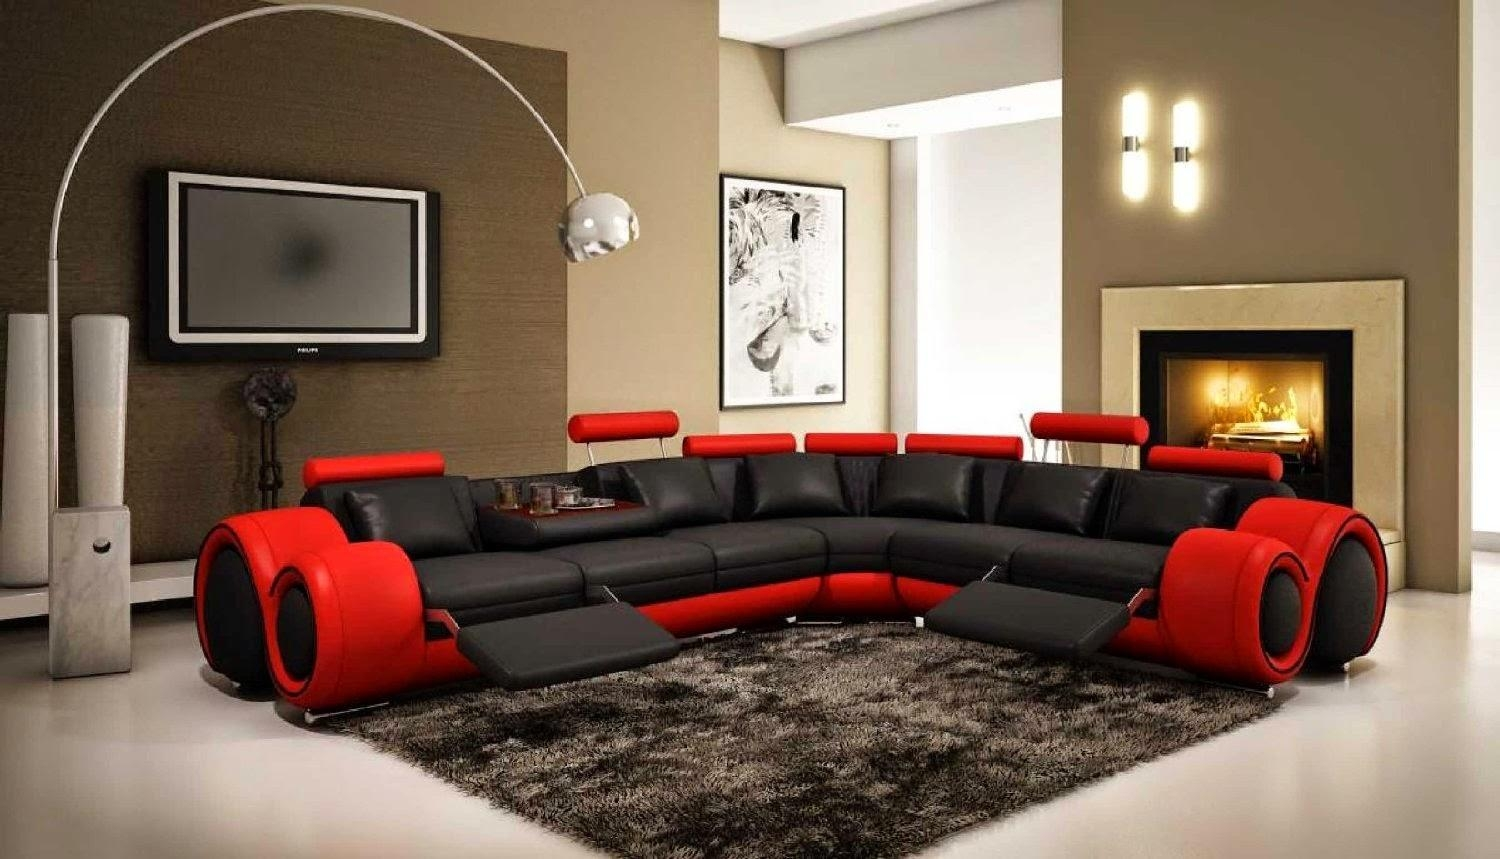 Dark Red Couches Regarding Black And Red Sofas (Image 8 of 20)